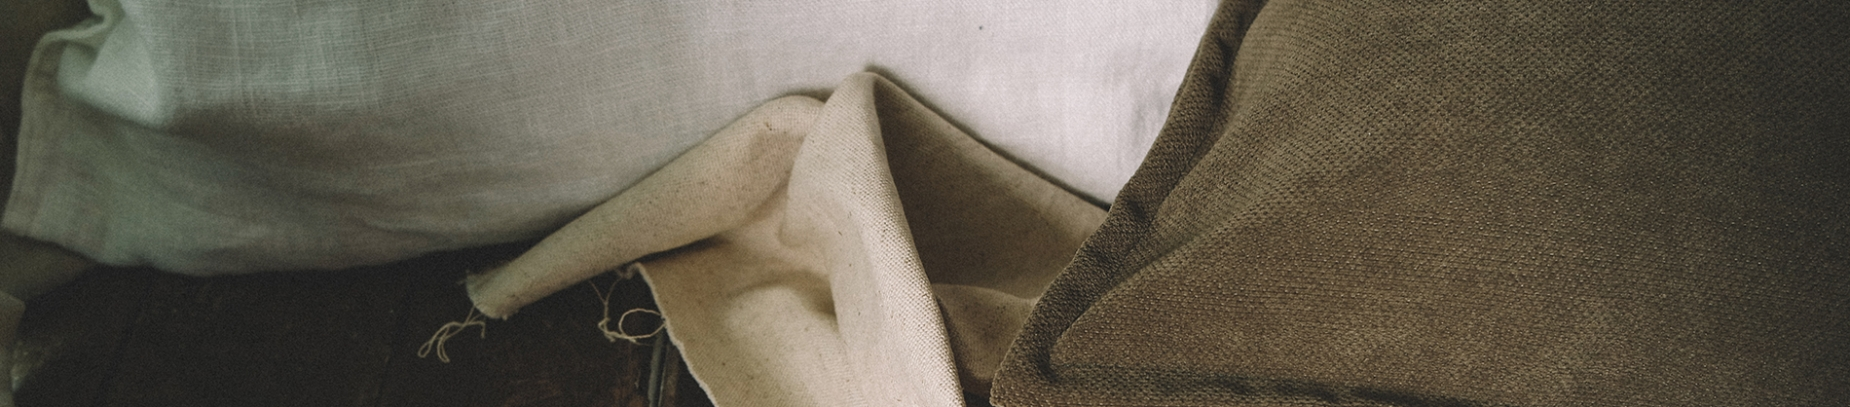 brown pillows and linen on a wooden floor